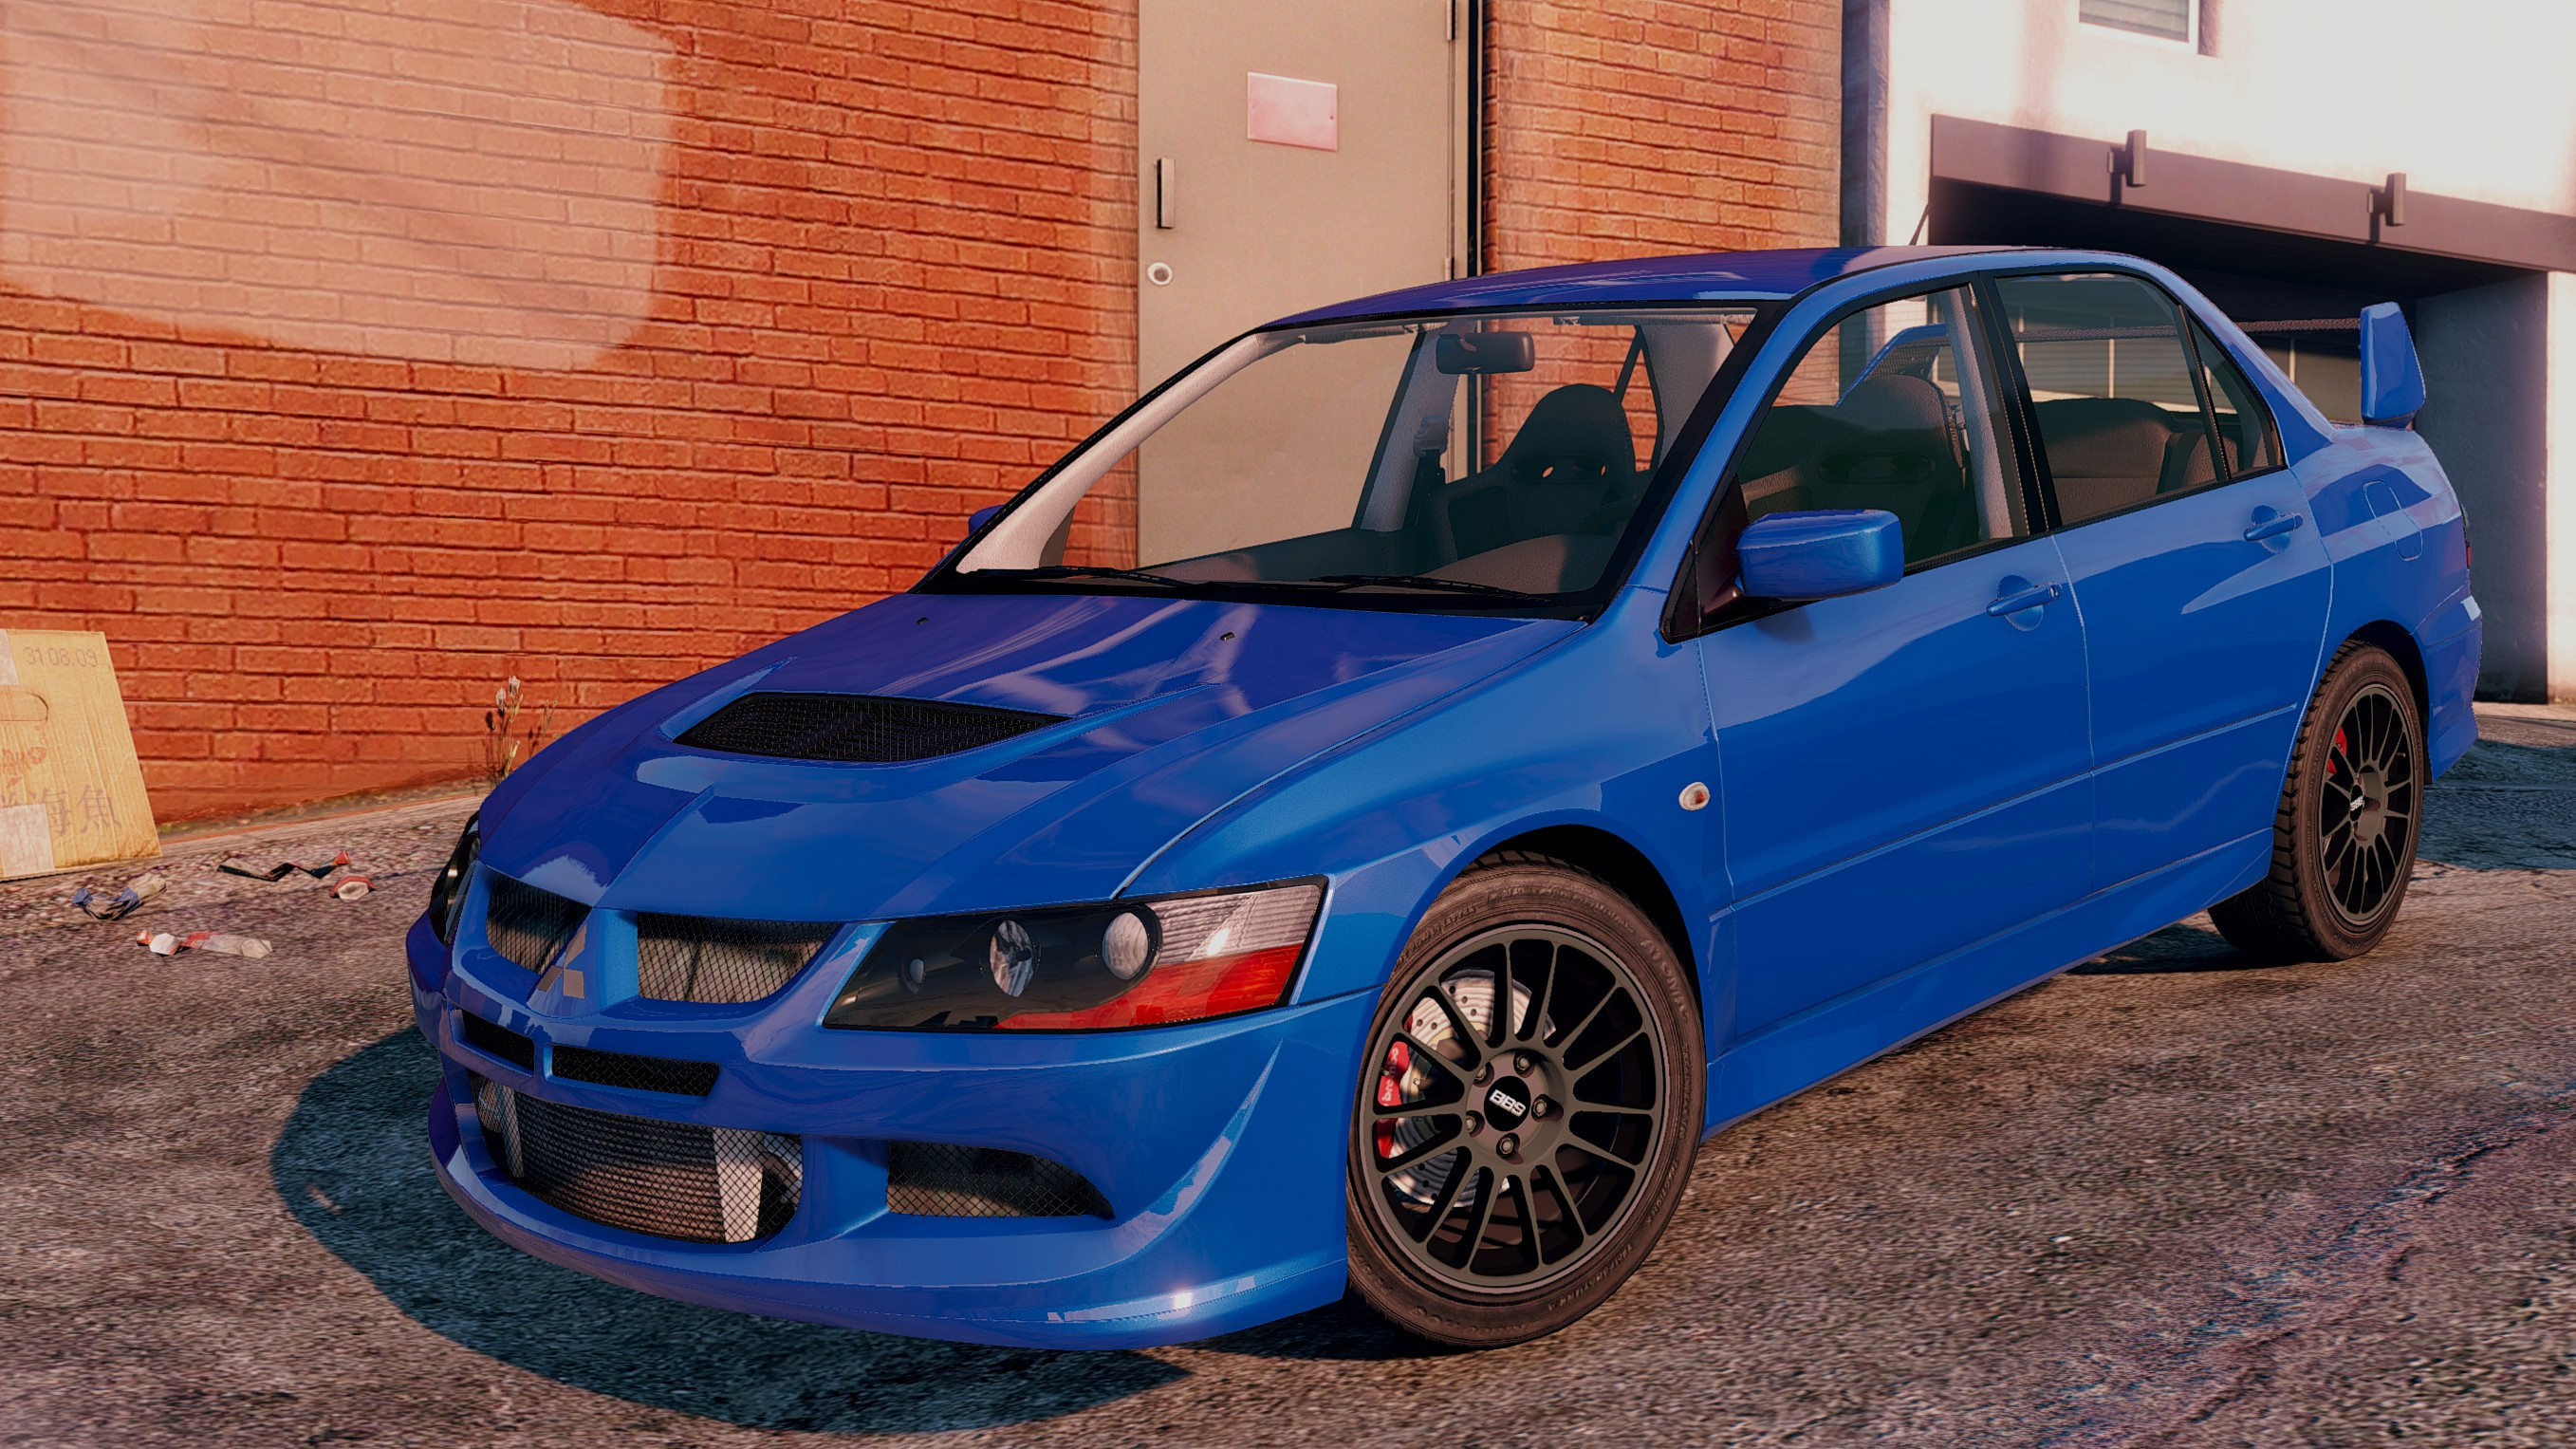 mitsubishi lancer evo 8 mr tuning gta5. Black Bedroom Furniture Sets. Home Design Ideas